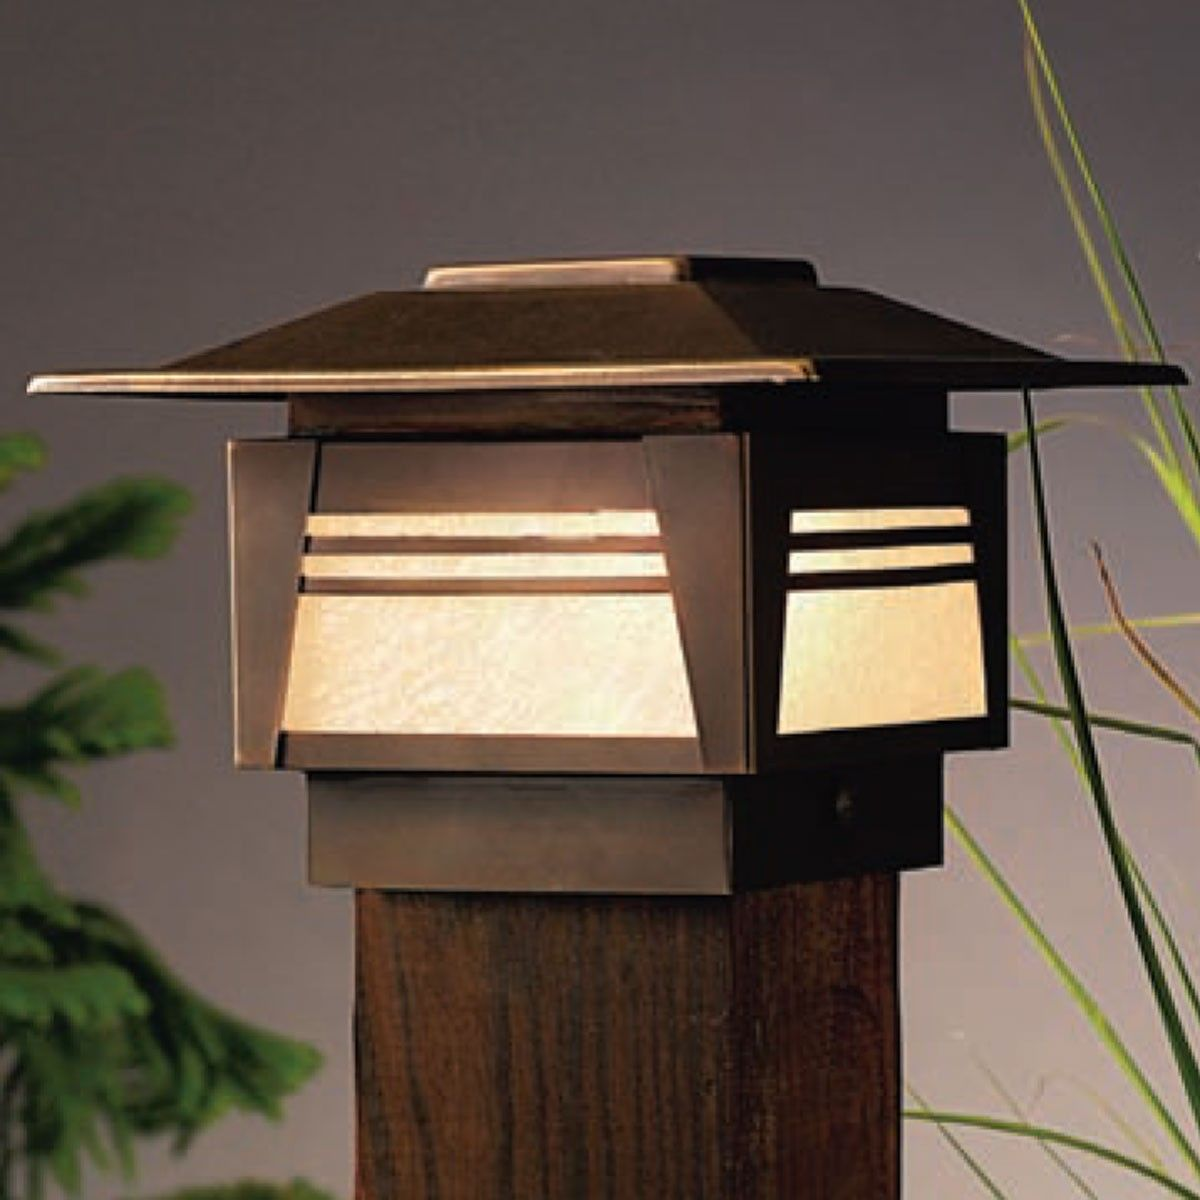 Kichler Zen Garden Post Cap Deck Light Outdoor Post Lights Garden Post Lights Garden Path Lighting